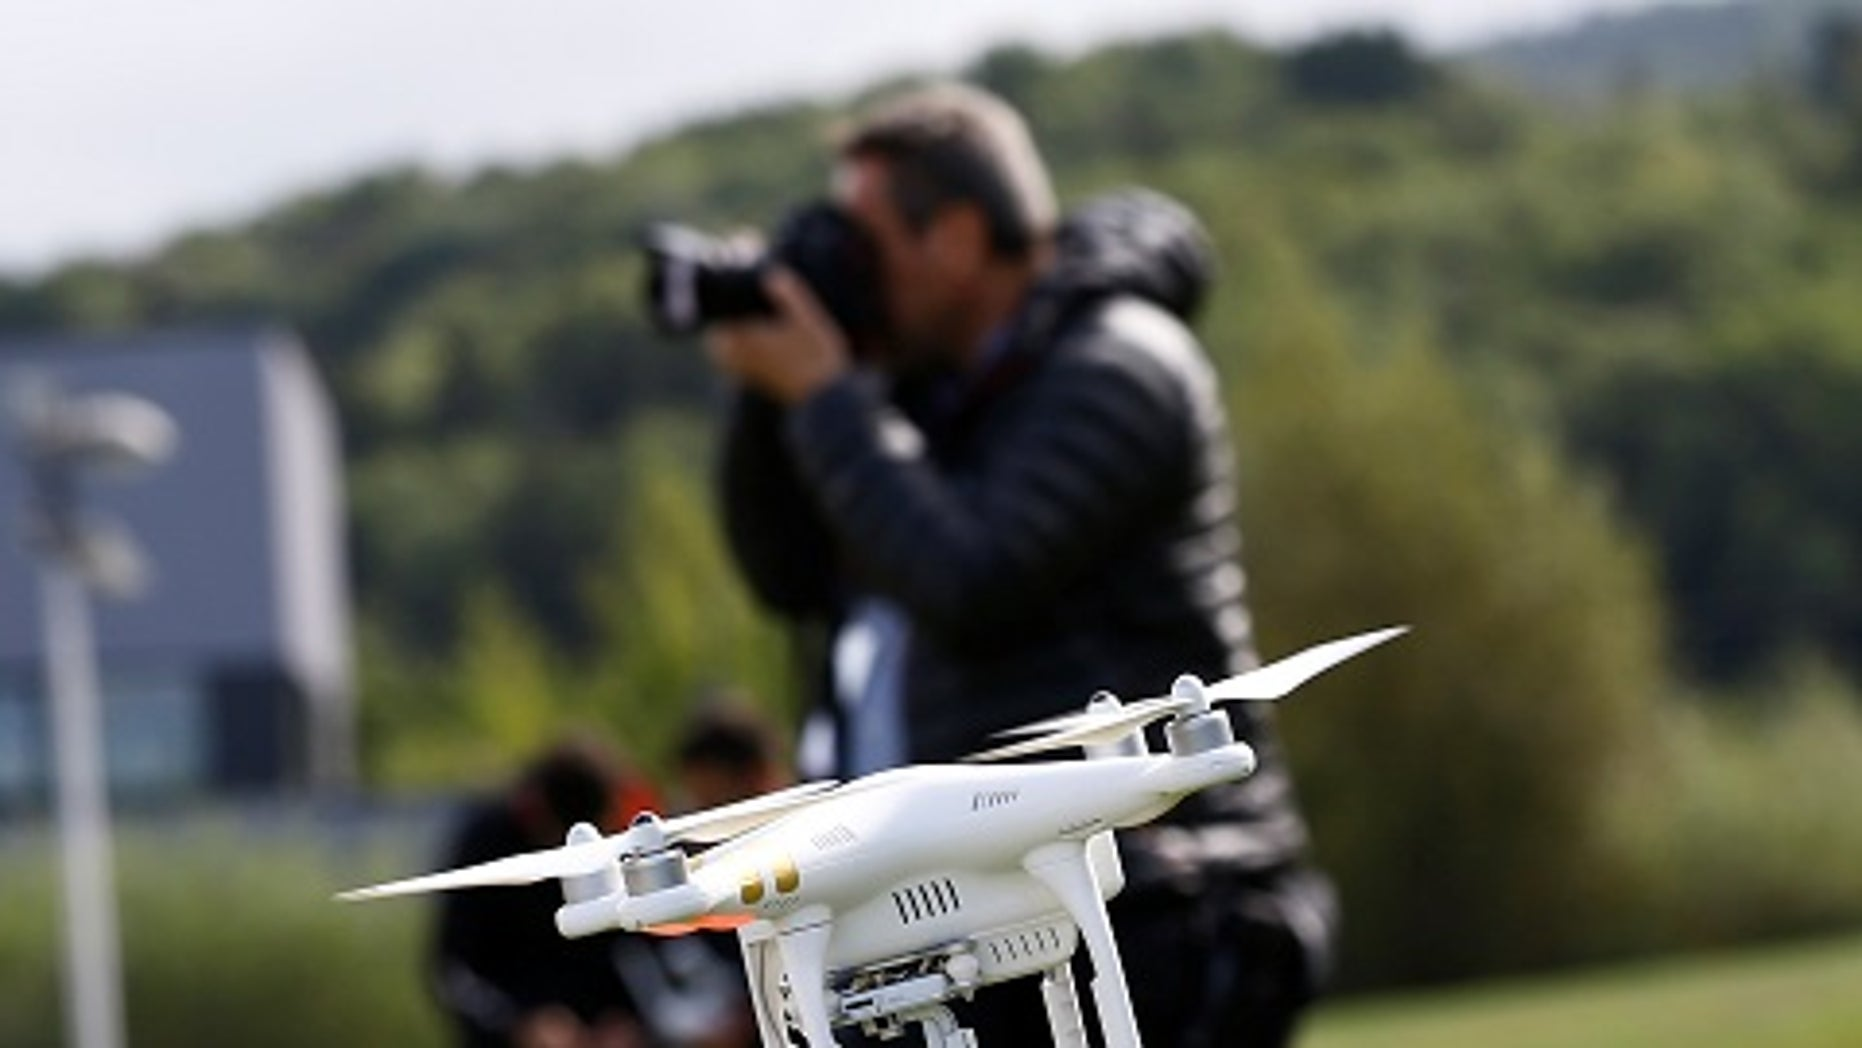 Analysts fear criminal groups will use explosive devices attached to drones to attack the U.S.